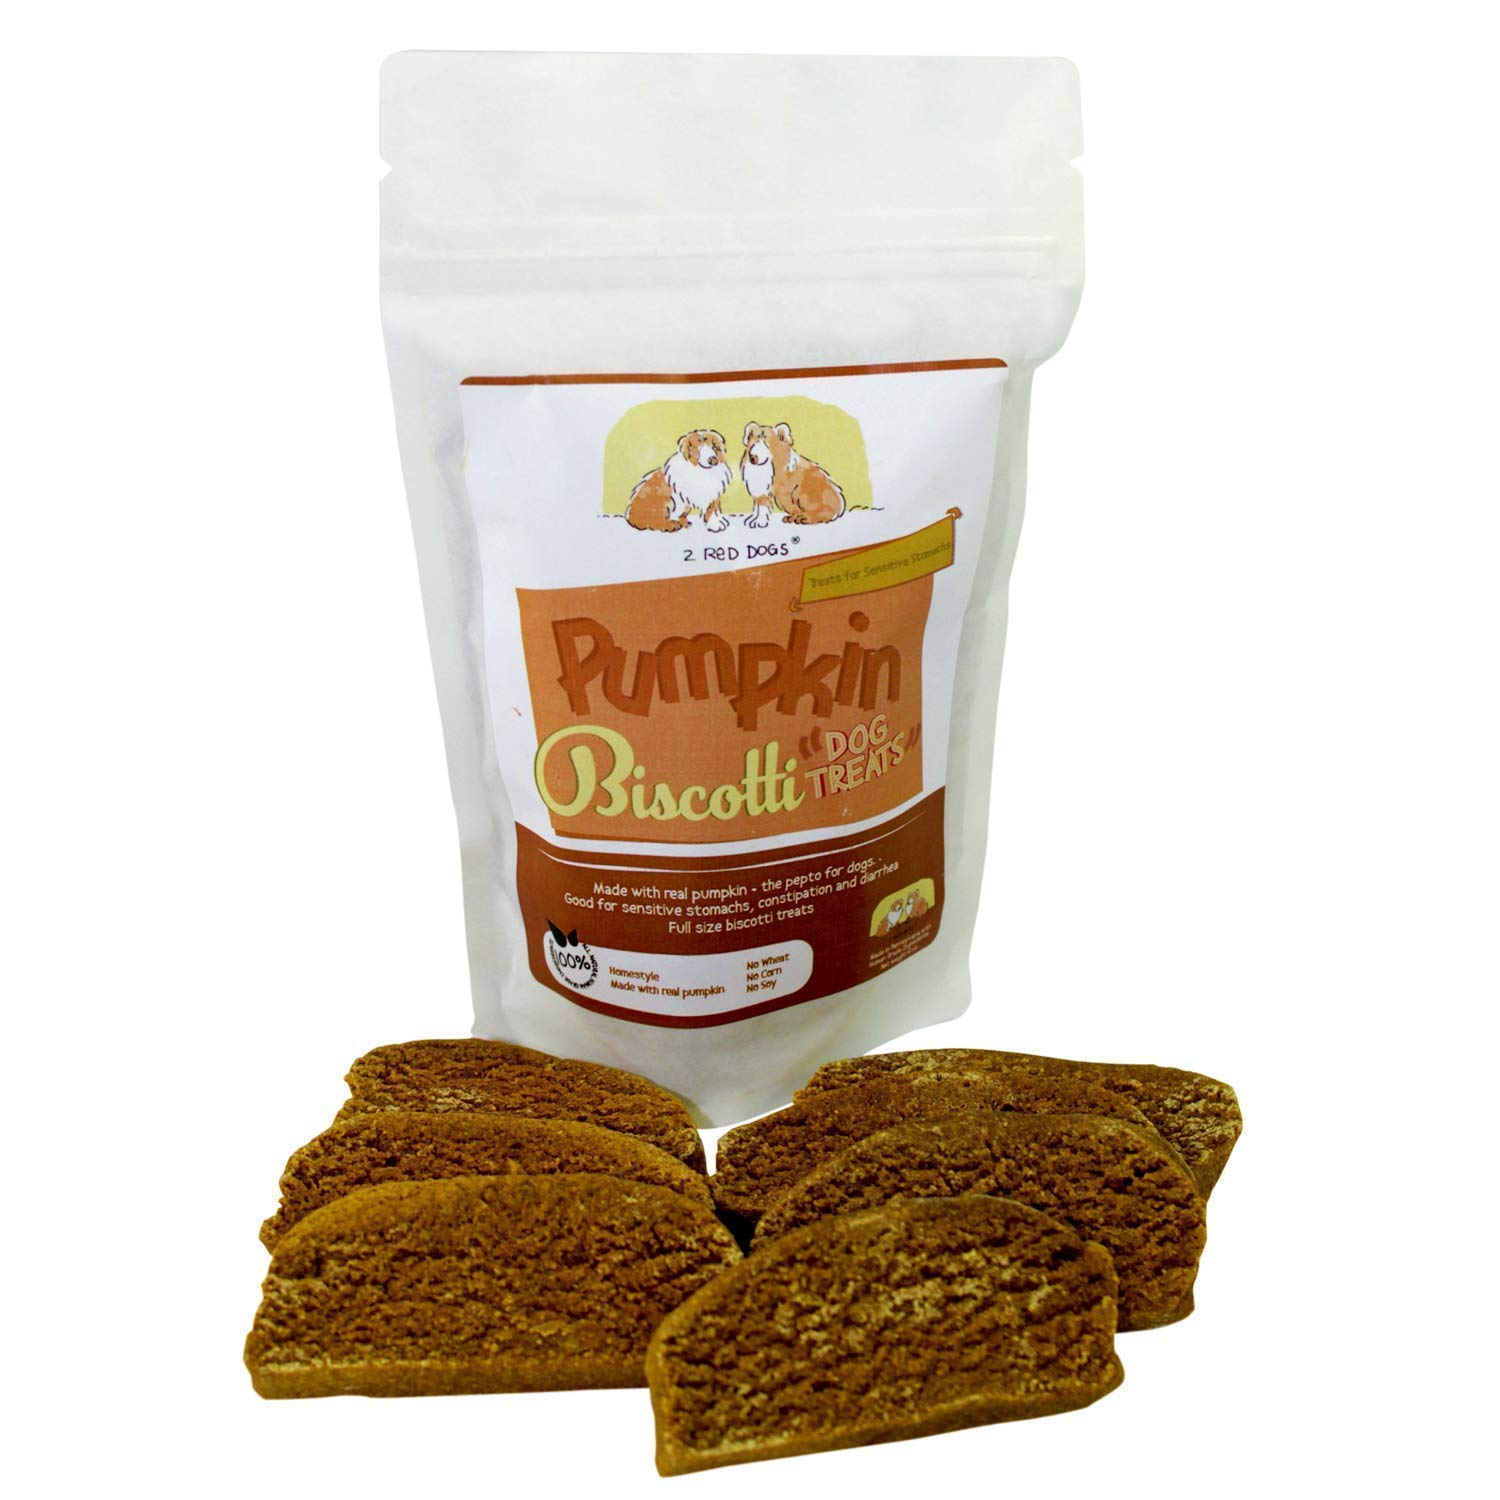 2 Red Dogs Pumpkin Biscotti All Natural Baked Dog Treats | Healthy Cookies Great Flavor Food Supplement Dog Cookies | Human Grade Wholesome Ingredients for Sensitive Stomachs 710gfJl22BgL